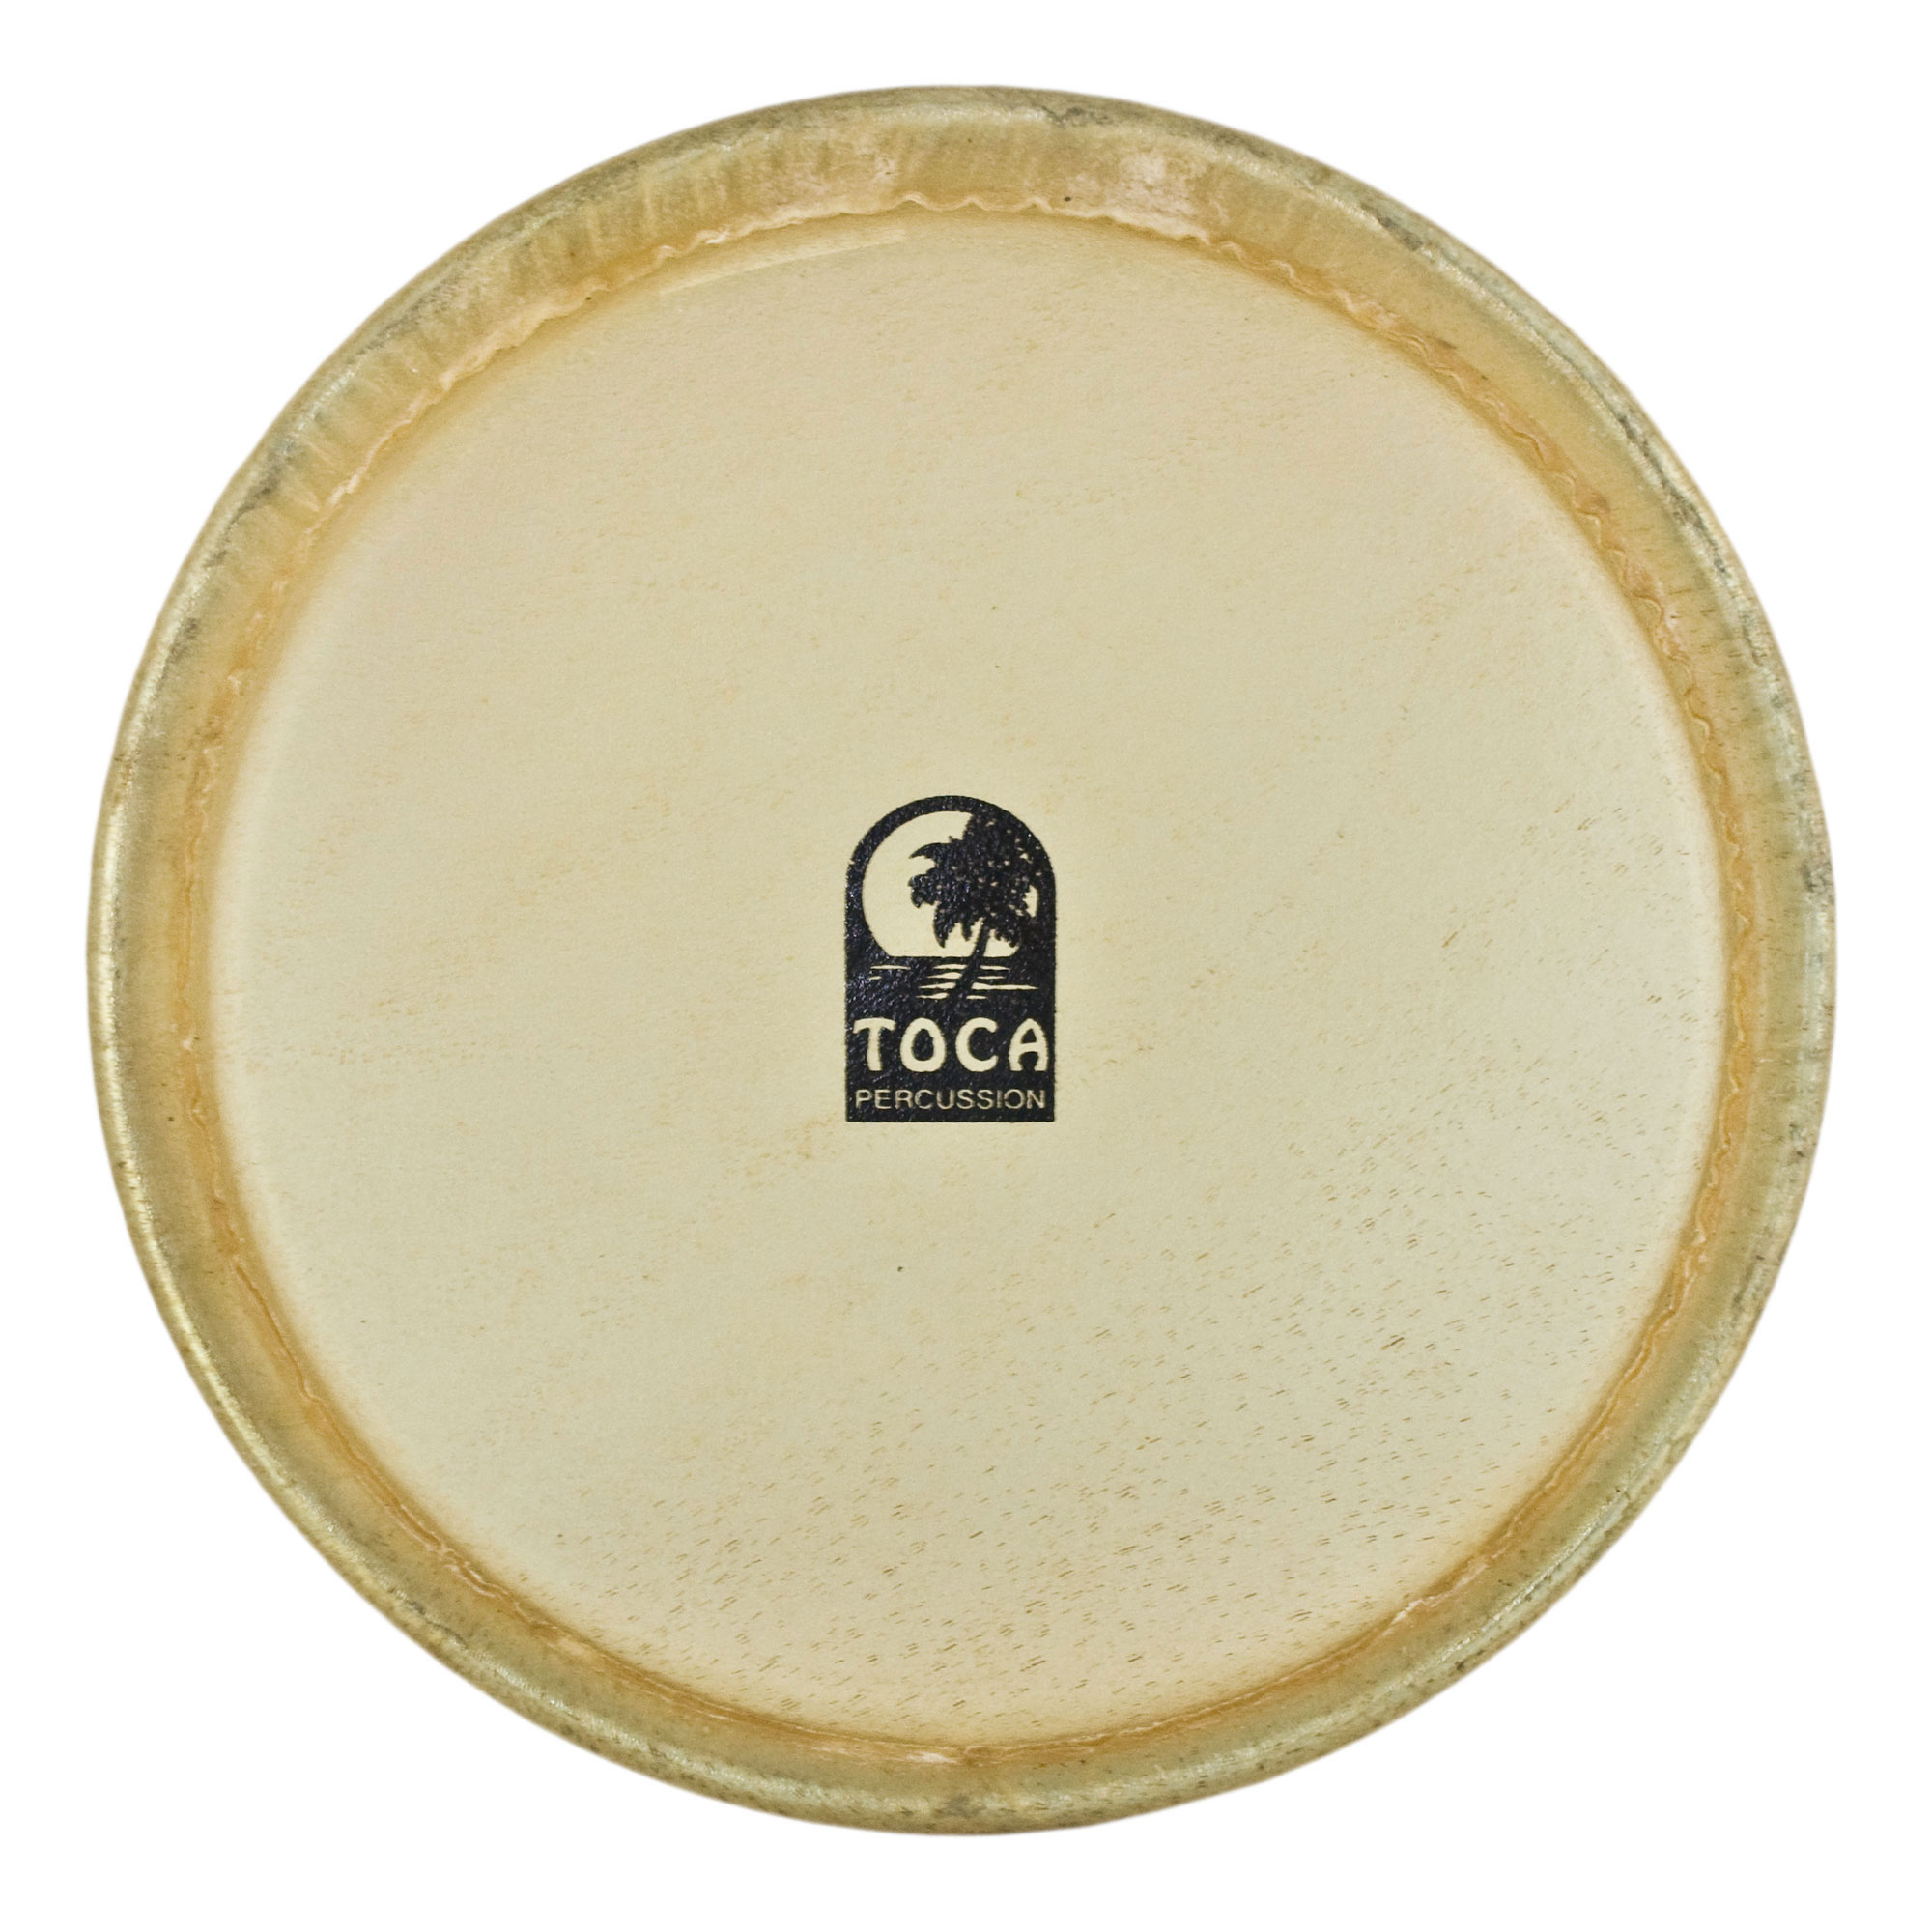 "Toca 12.5"" Traditional Rawhide Conga Drum Head"